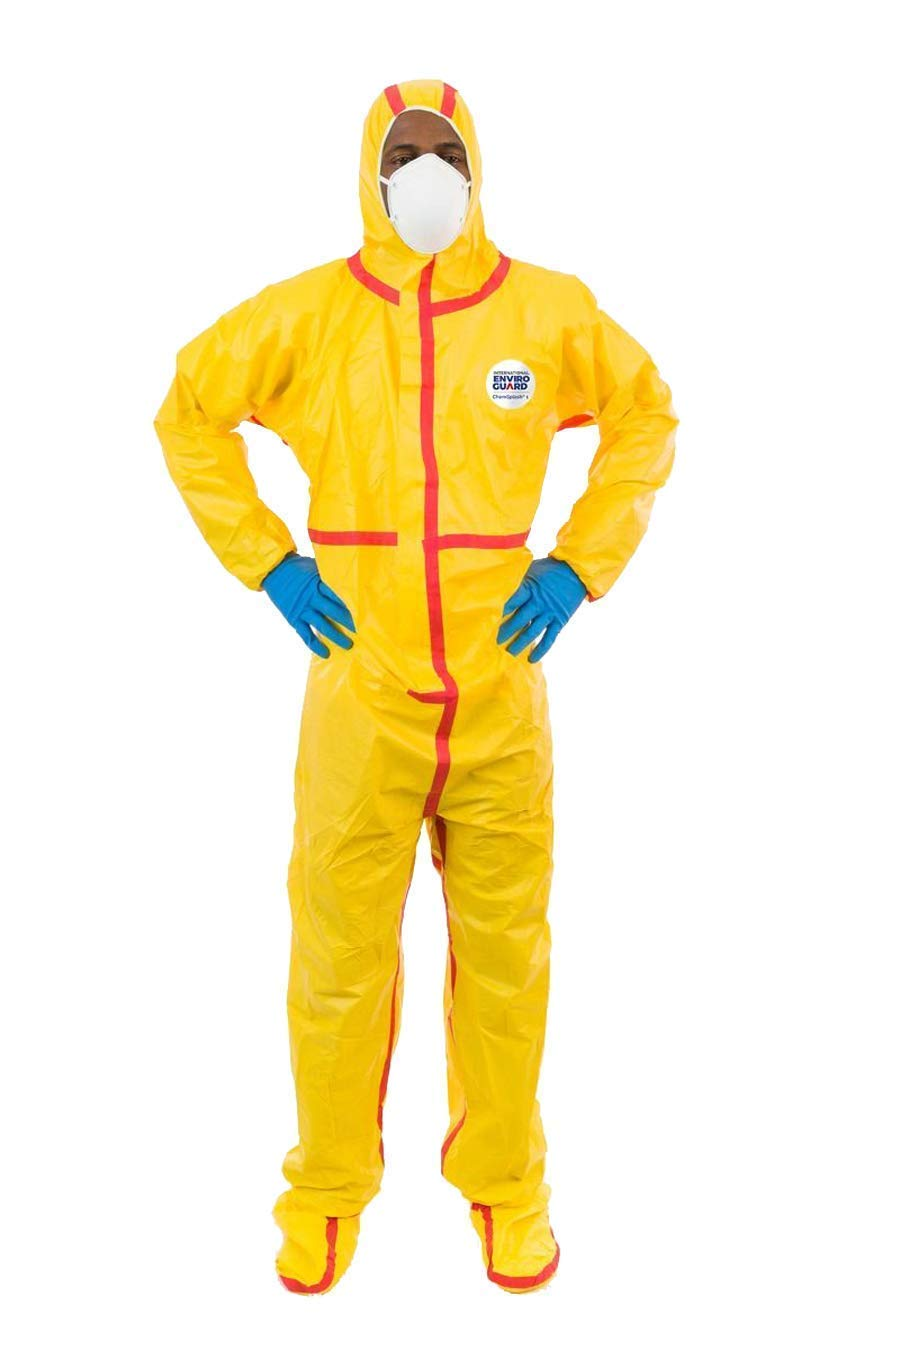 ChemSplash 1 Chemical Splash Taped Seams Protection Suit (Yellow) for Hazmat, Paint, and Light Duty Chemicals (2XL, Hood & Boot, Elastic Wrist) (Case of 6) by CHEMSPLASH